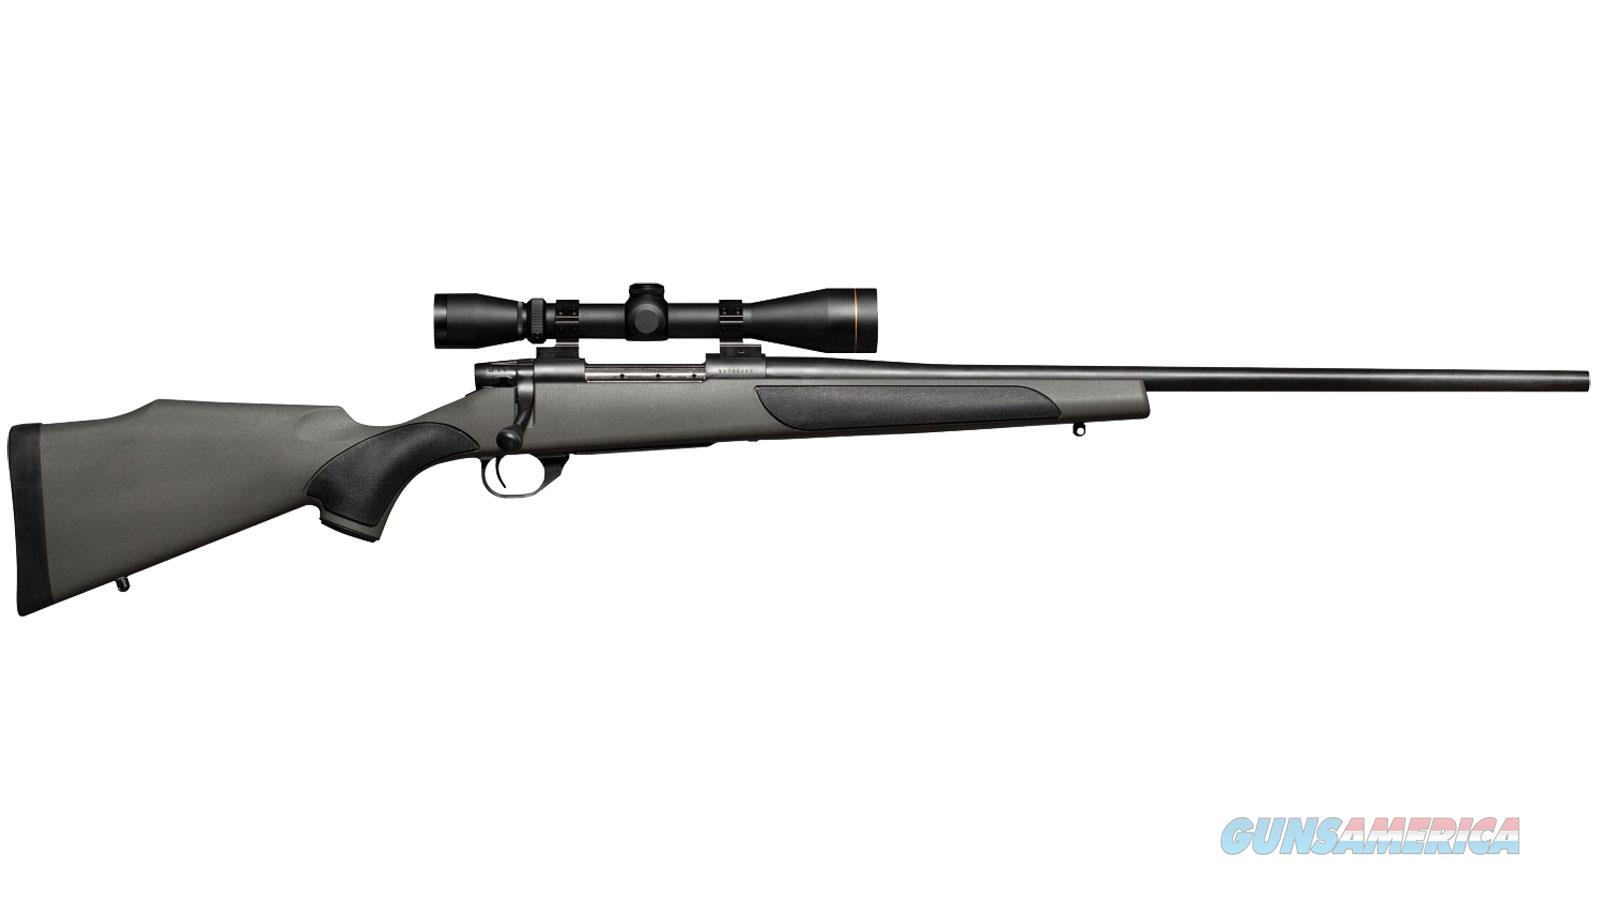 "WEATHERBY VGD VX-2 PKG 243 24"" 4RD VLP243NR4O  Guns > Rifles > Weatherby Rifles > Sporting"